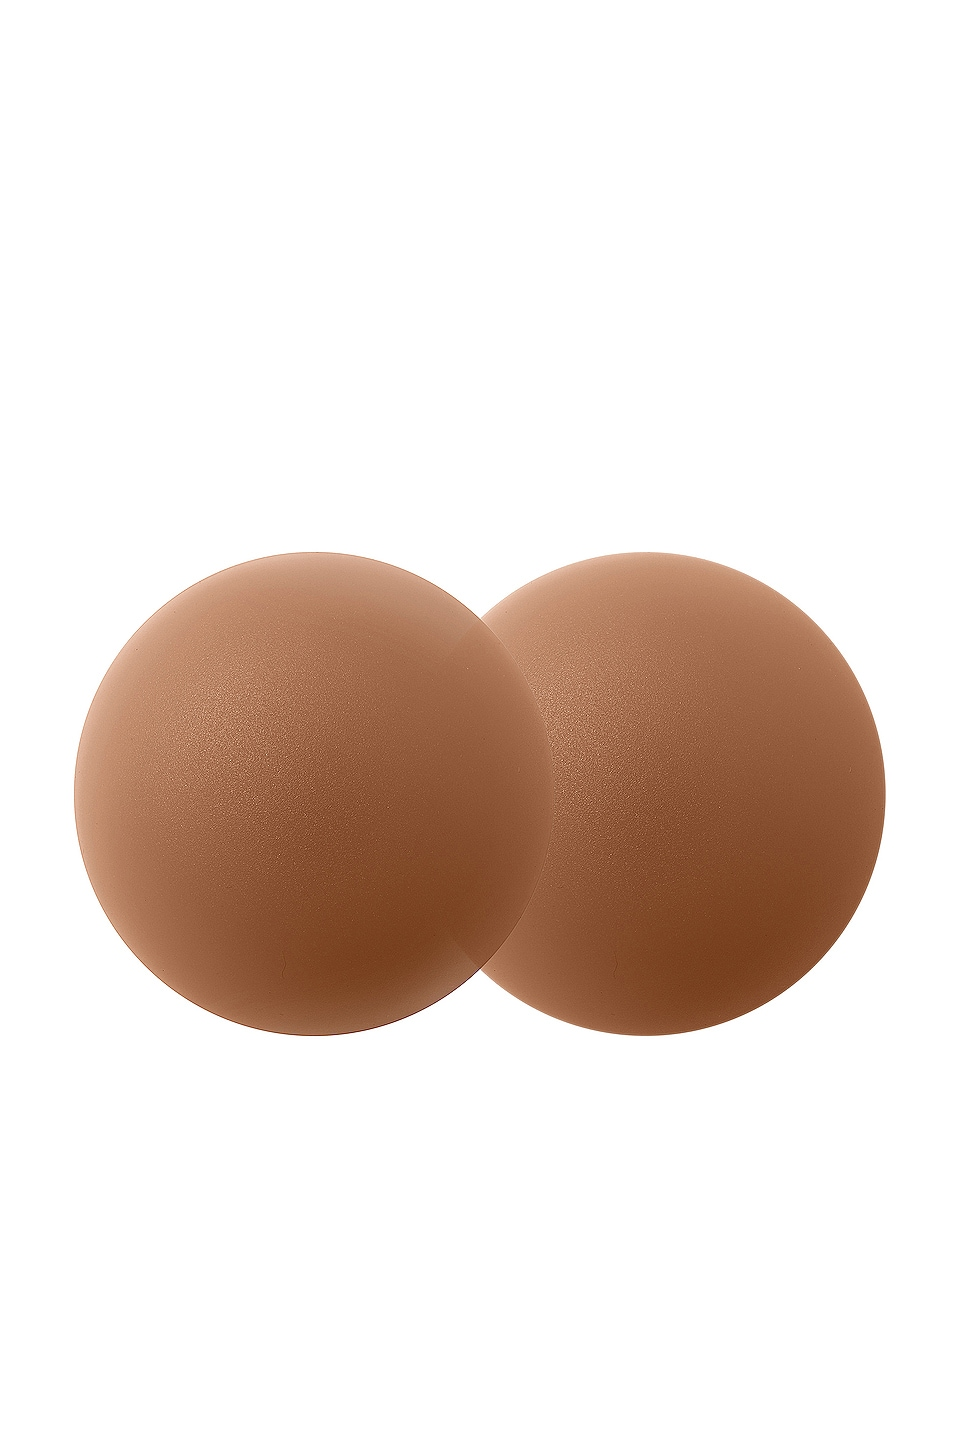 Bristols6 Nippies Skin Size 2 in Coco